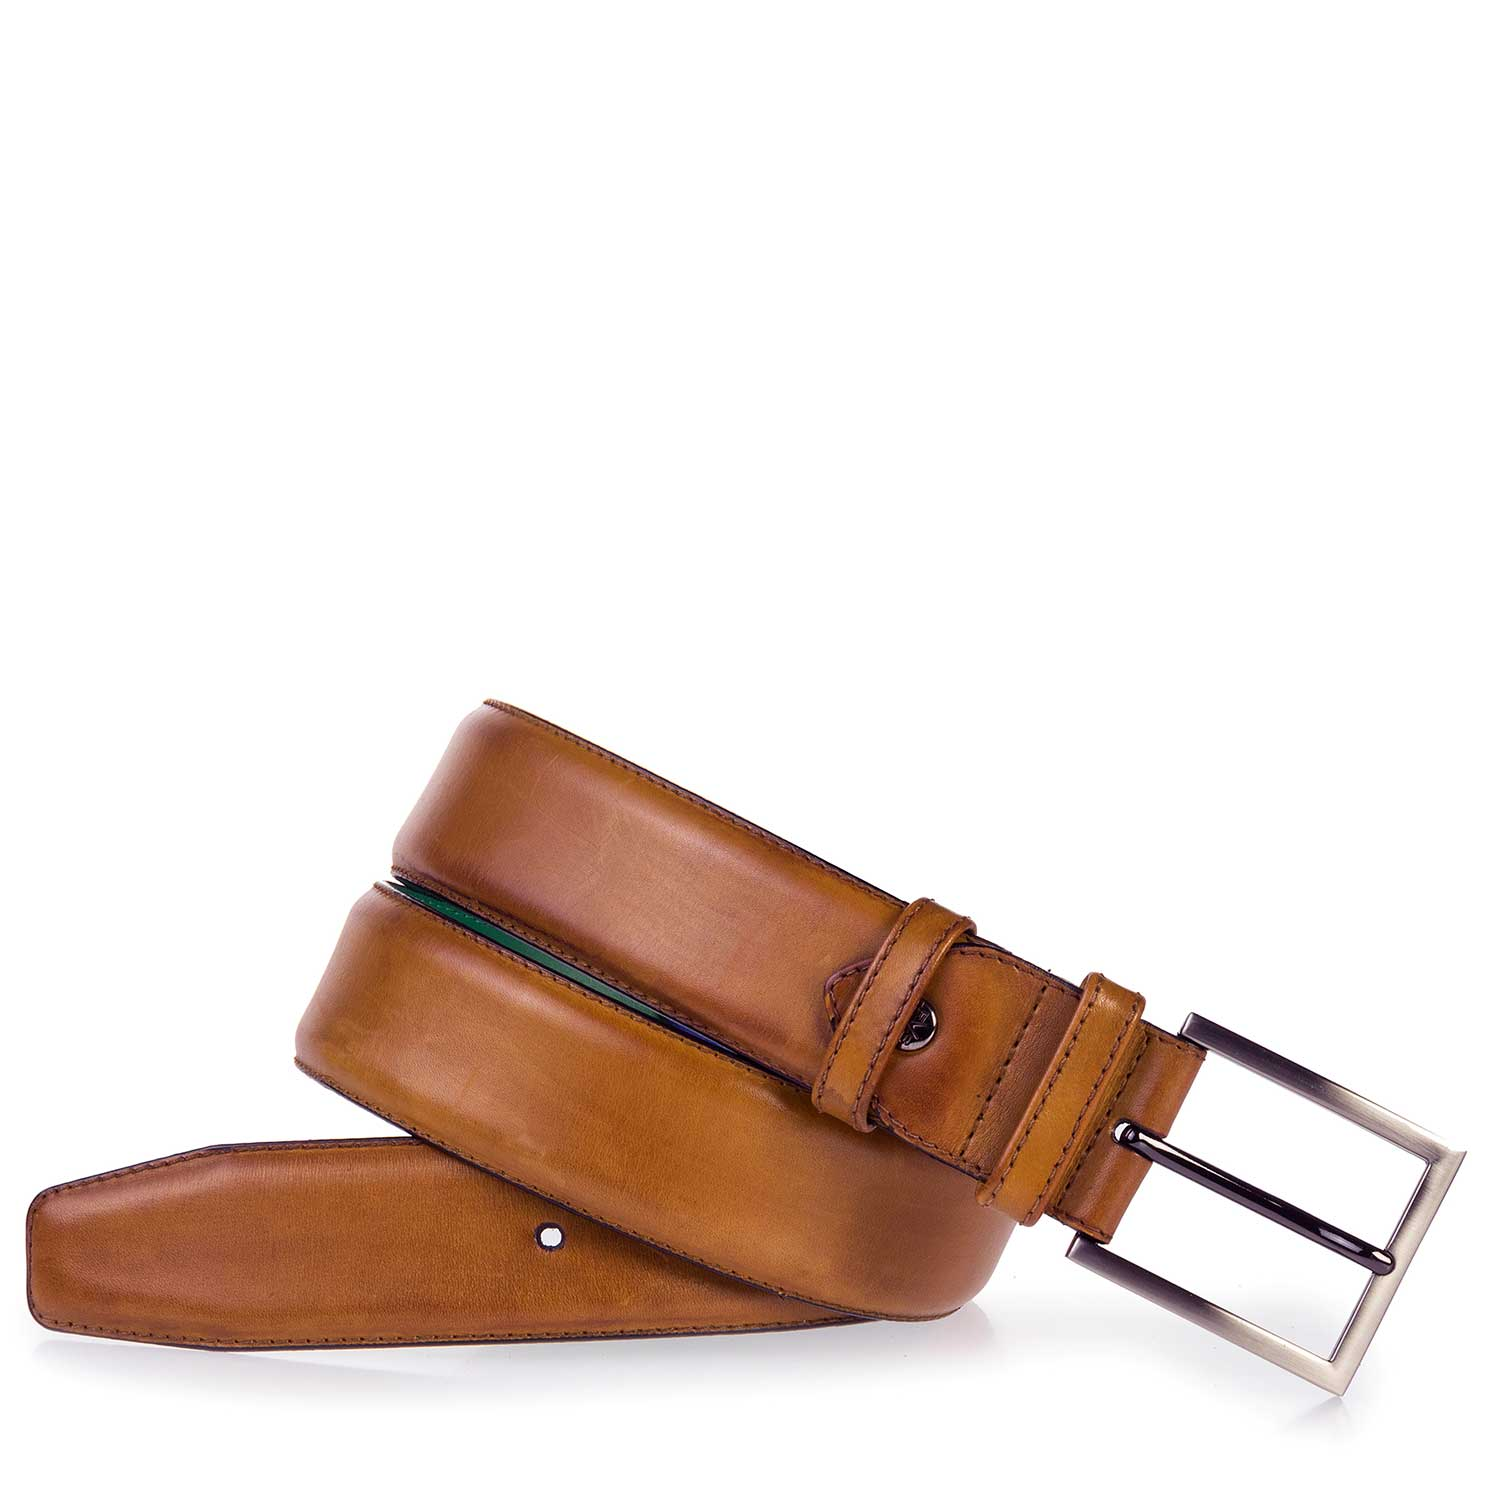 75178/01 - Cognac-coloured leather belt